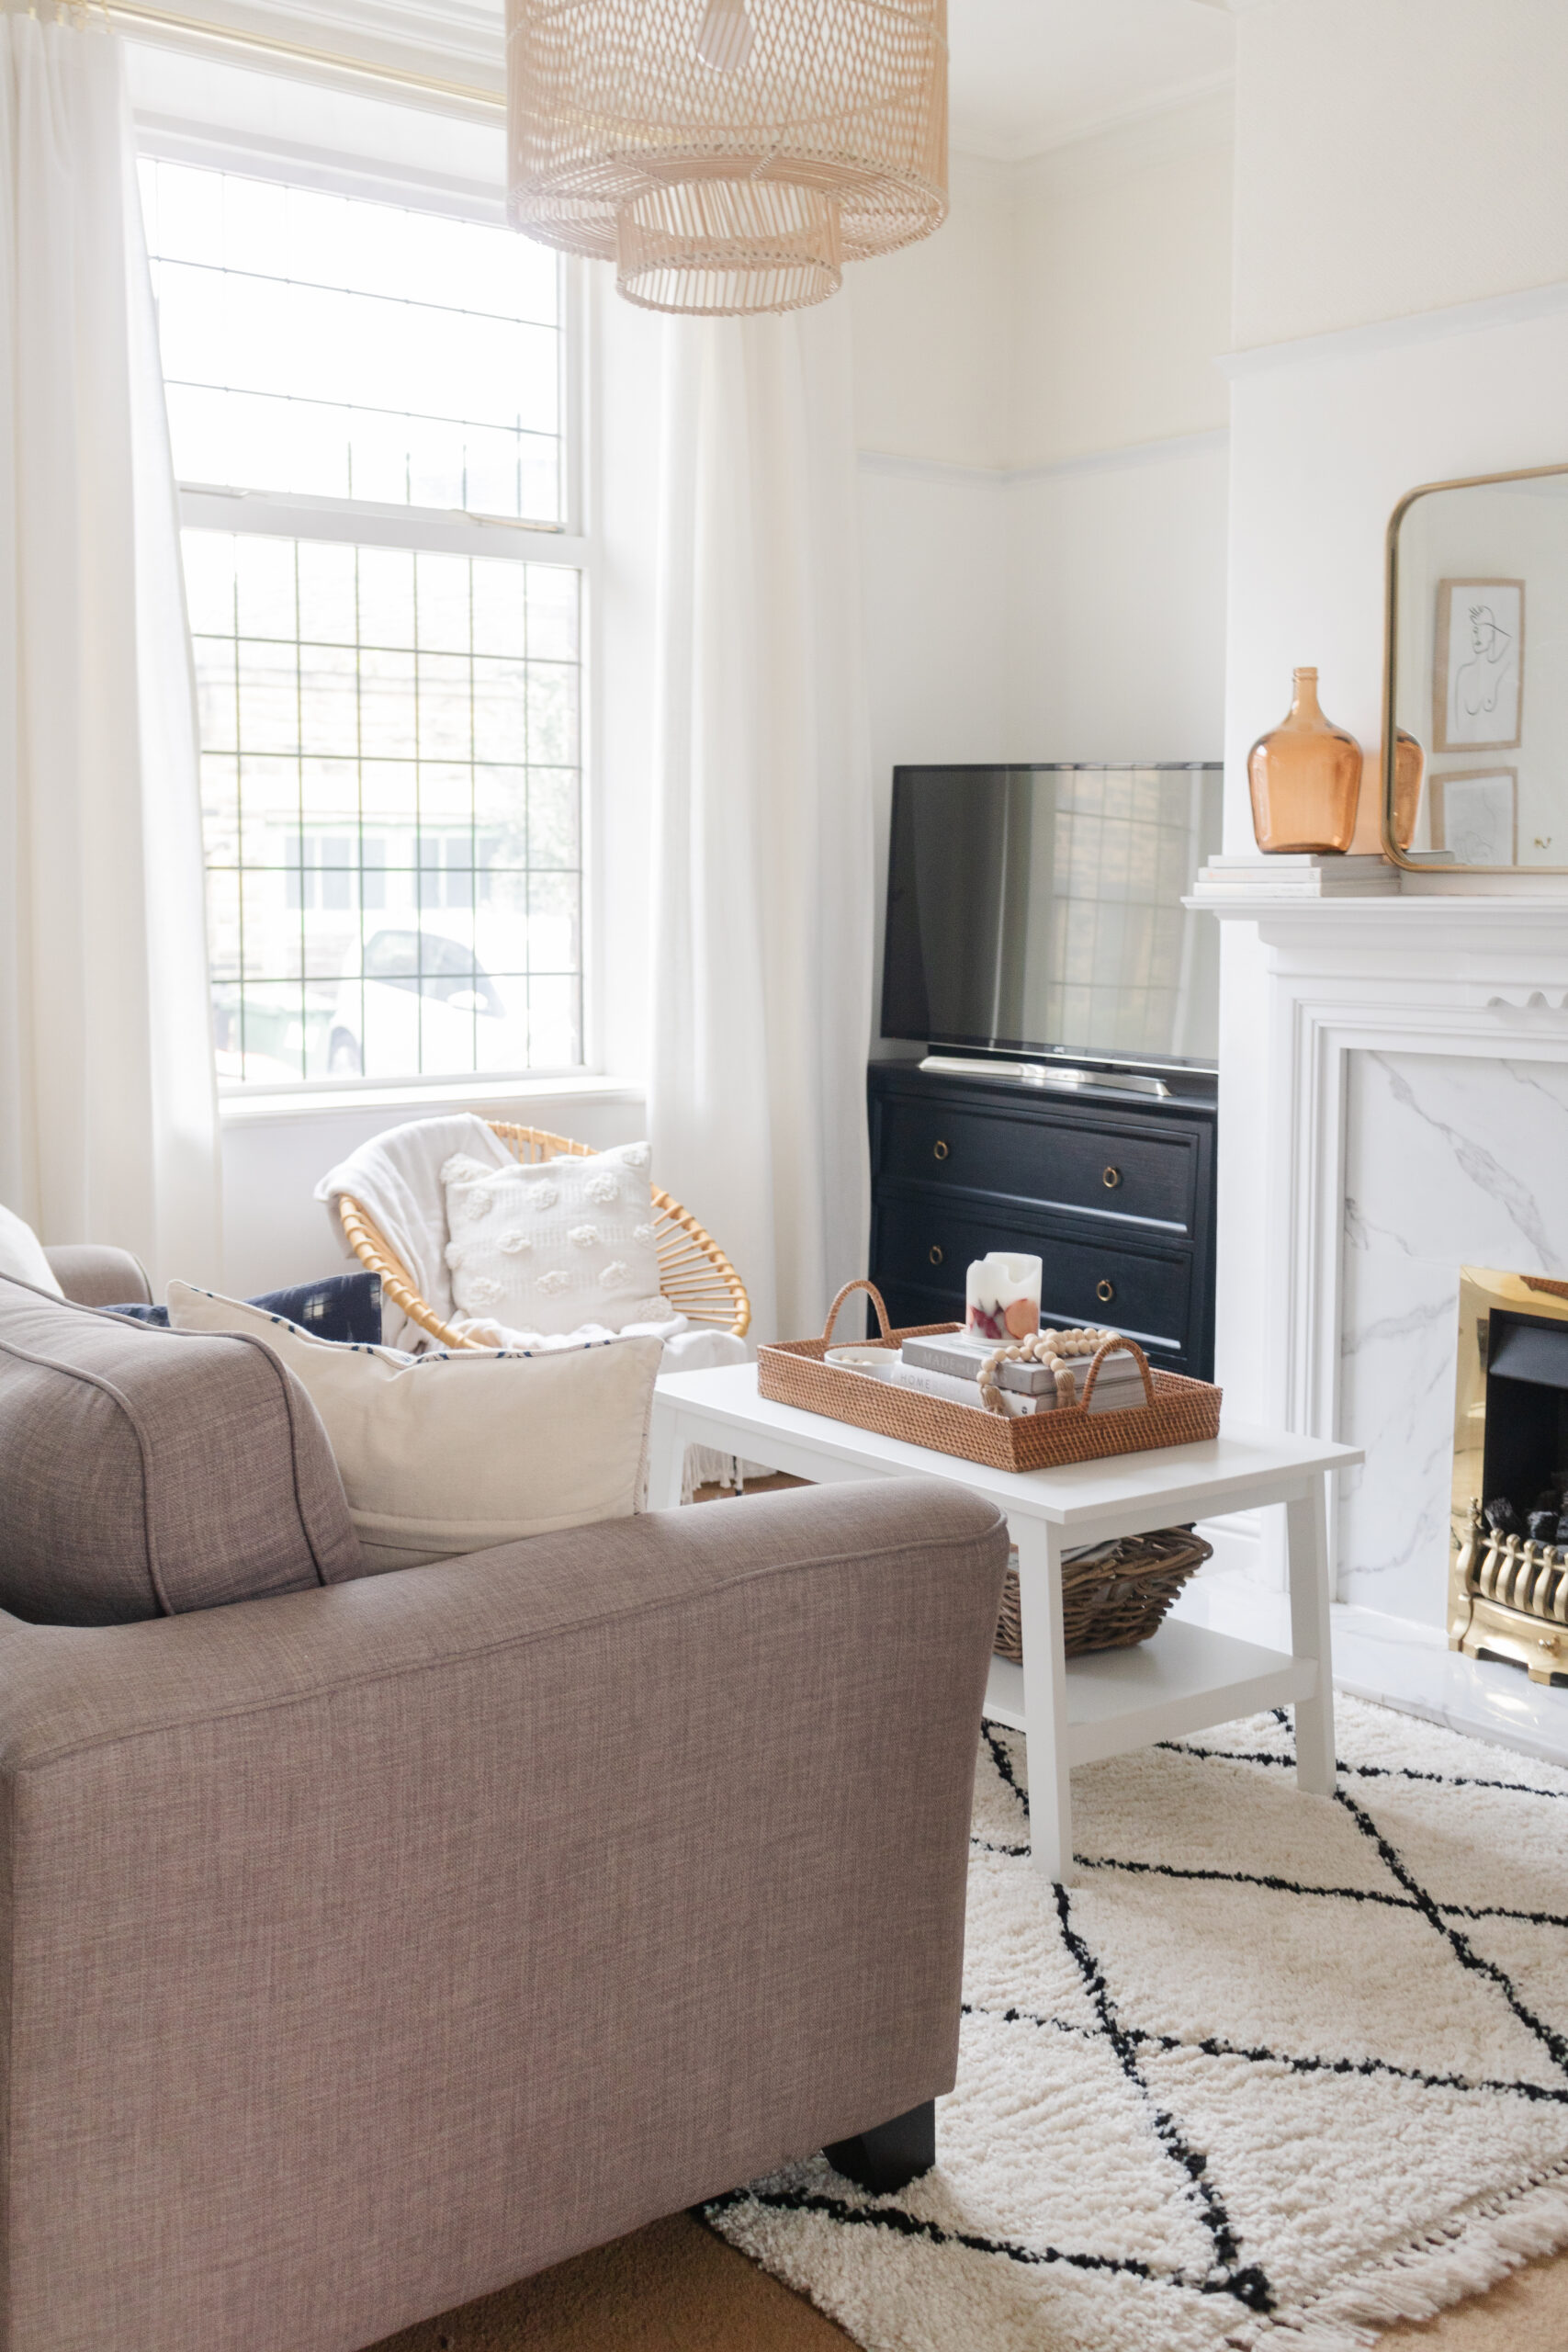 an edited lifestyle interiors creating a home you love